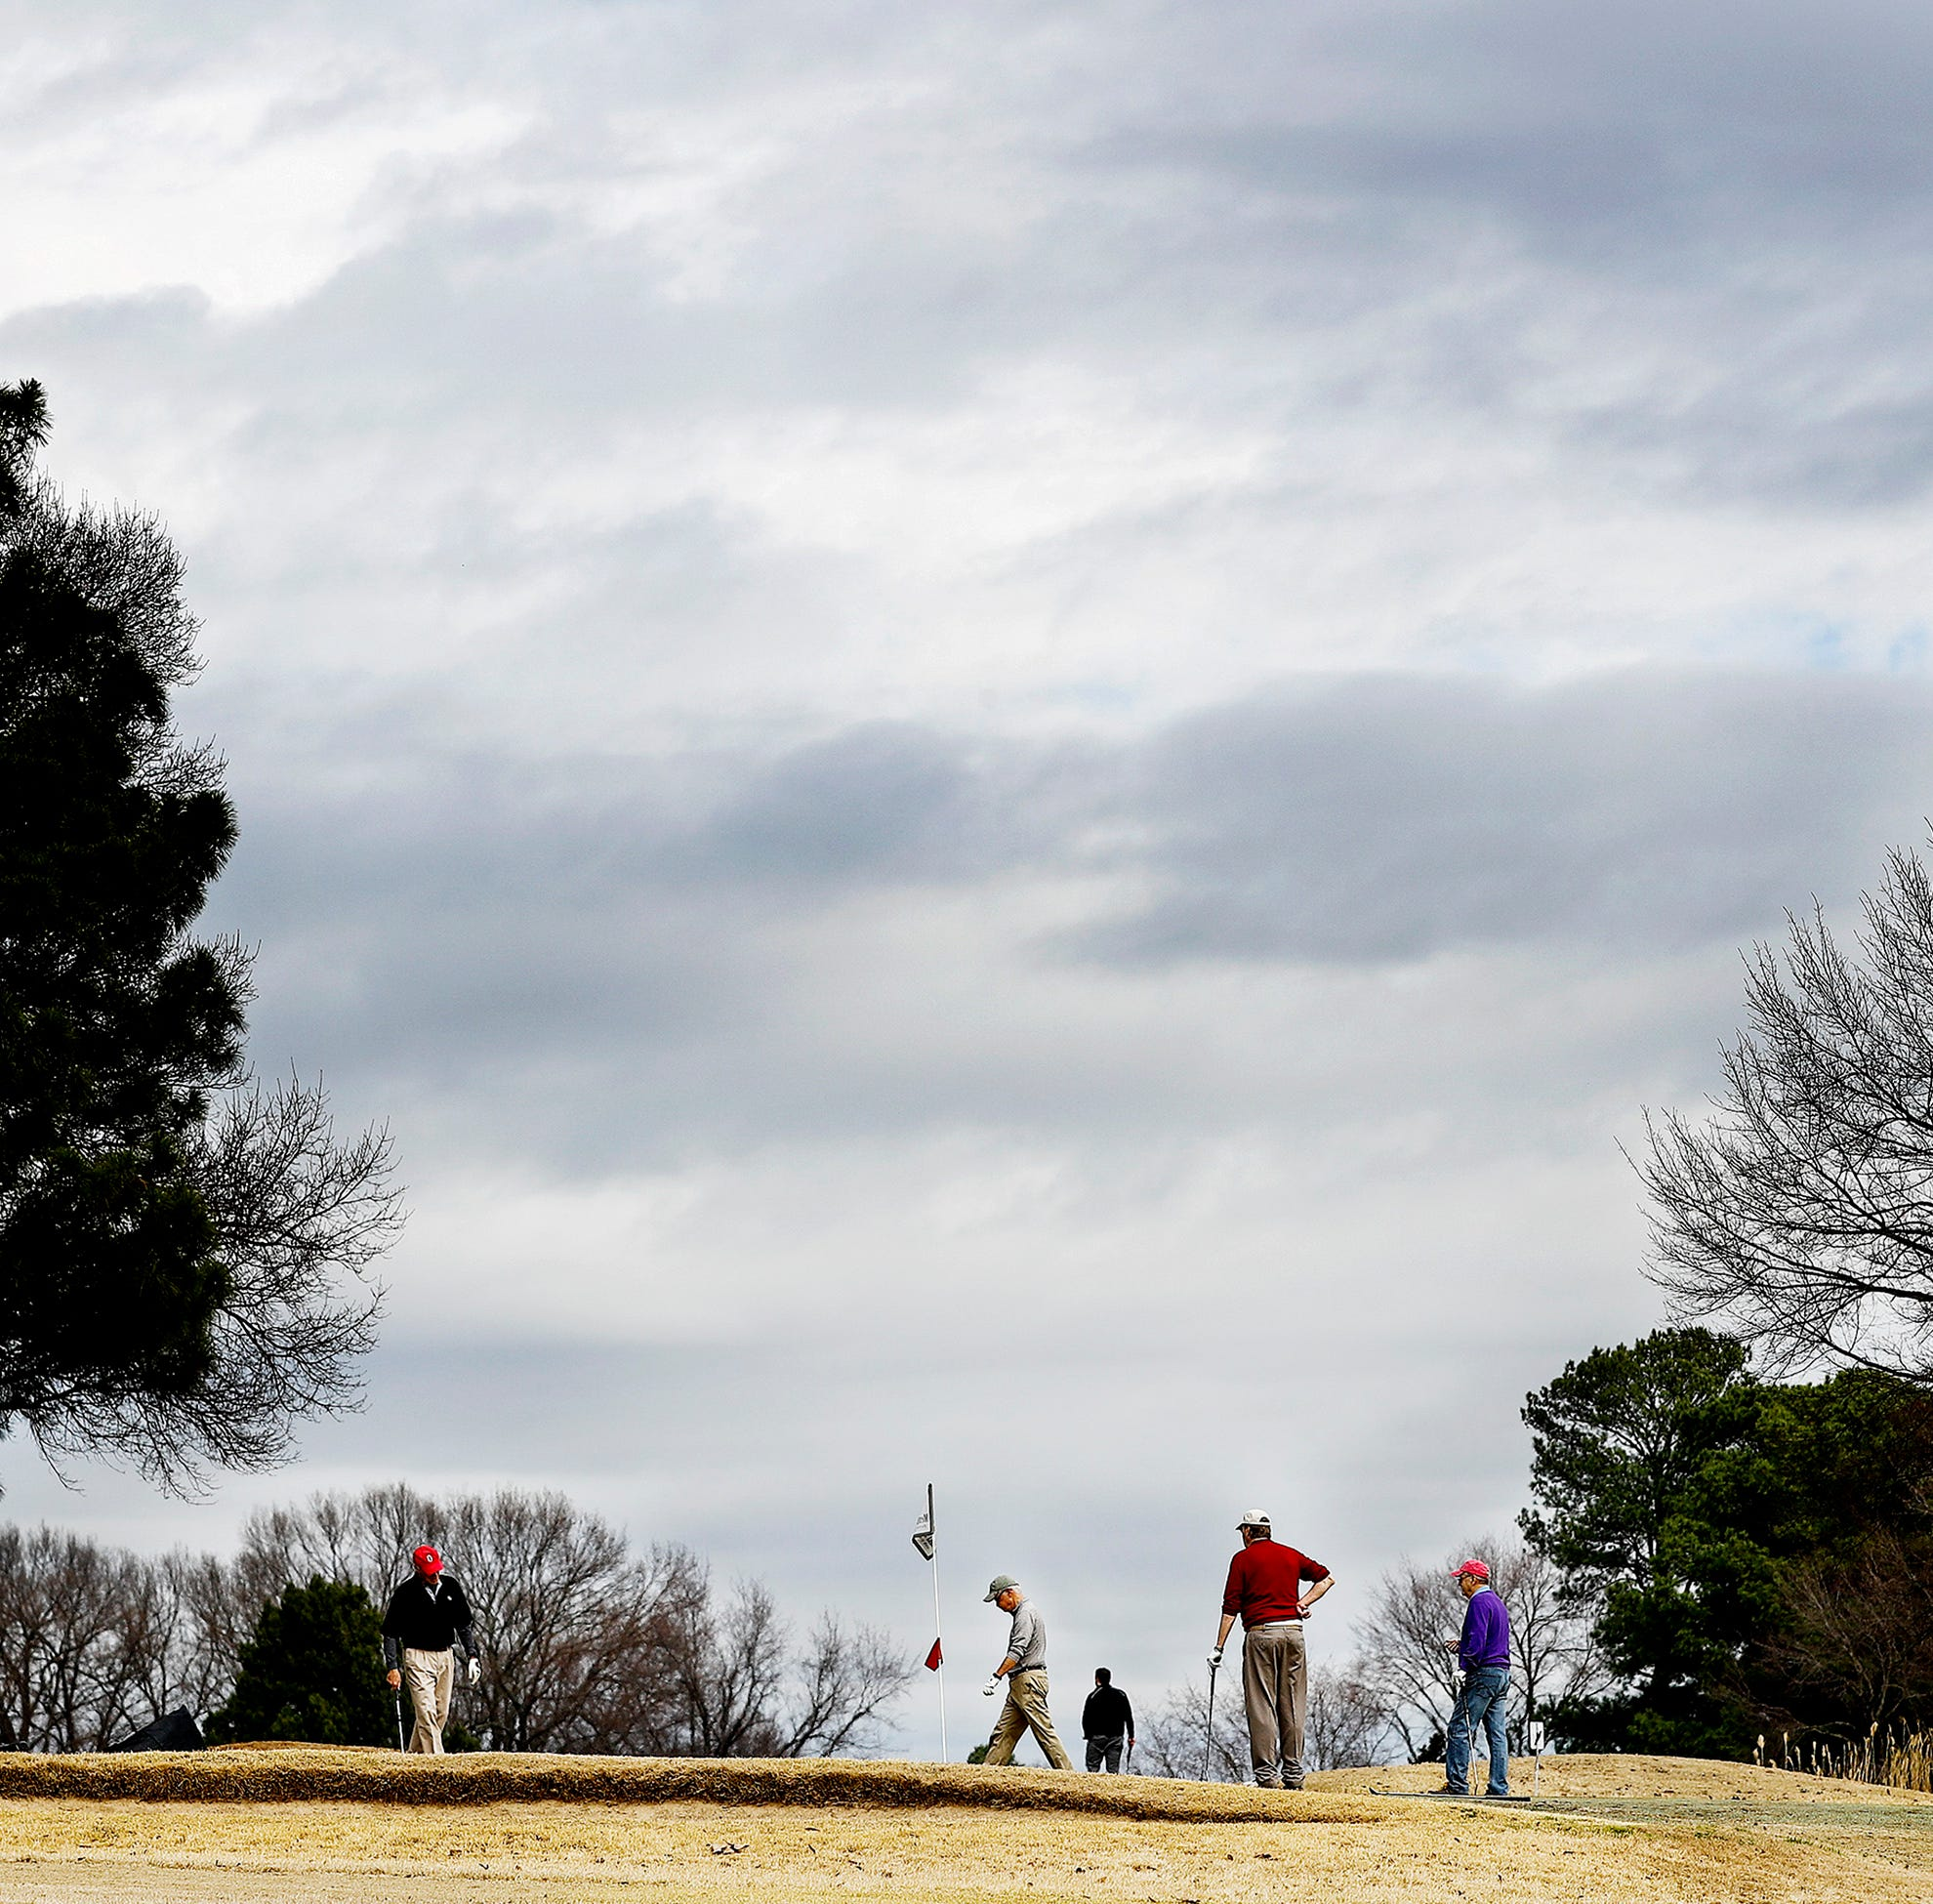 Golf courses have closed across the country. Has Memphis weathered the storm?